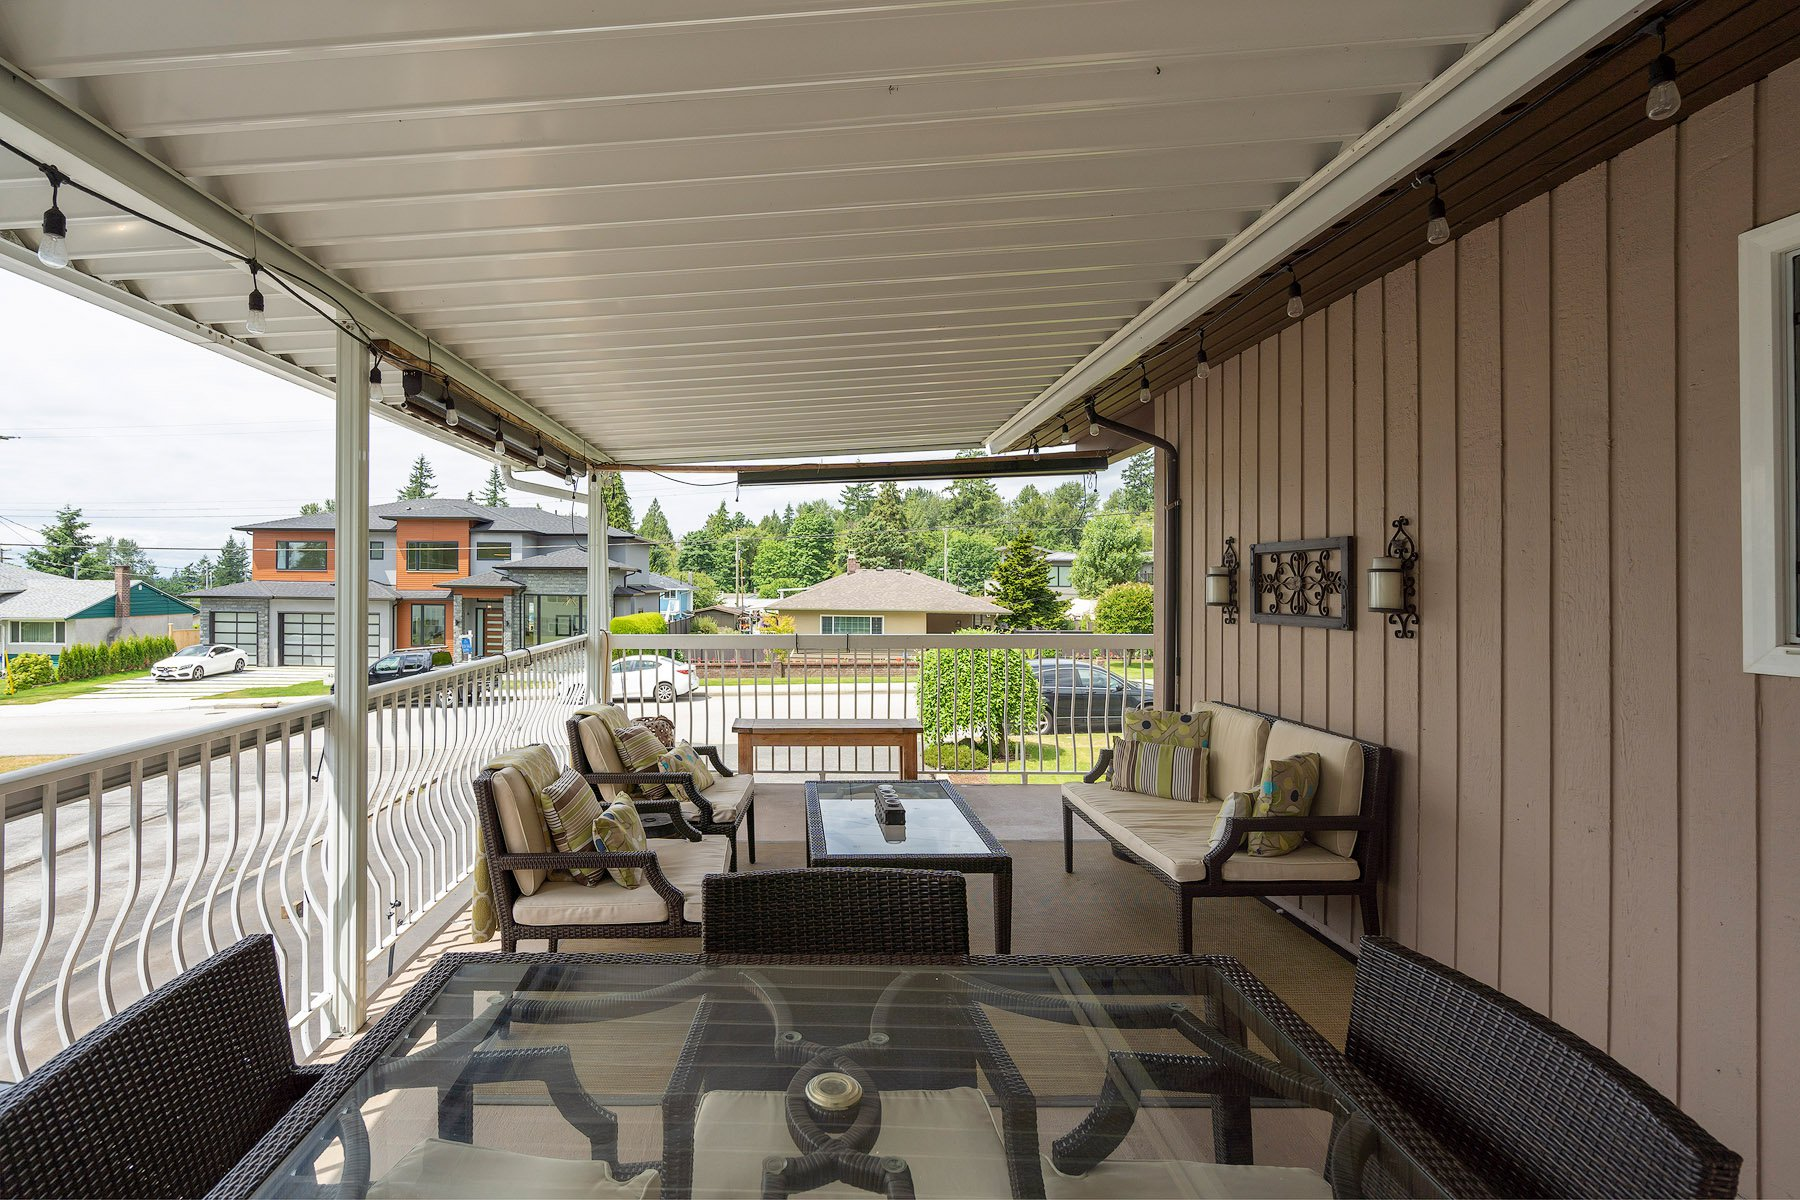 Photo 24: Photos: 423 MONTGOMERY Street in Coquitlam: Central Coquitlam House for sale : MLS®# R2380693